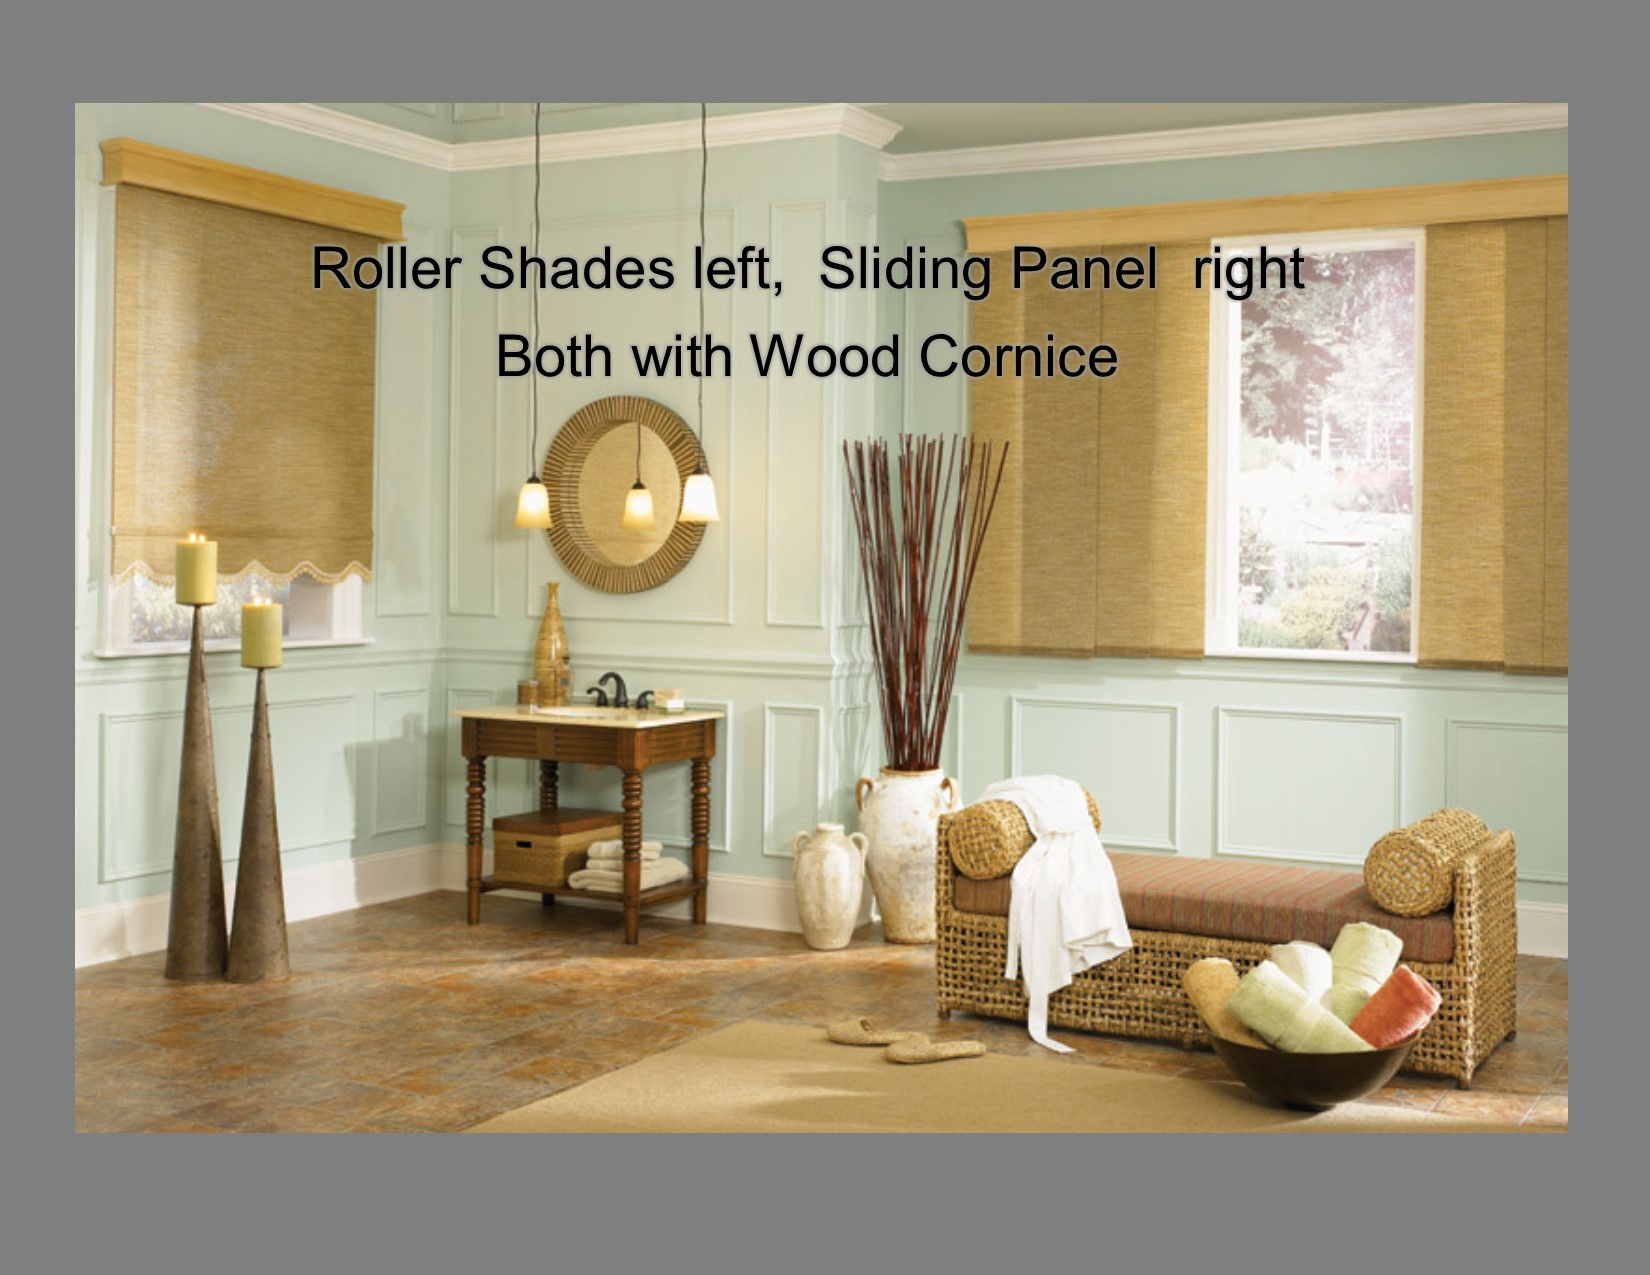 Roller_Shades_with_Sliding_Panel__1.jpg